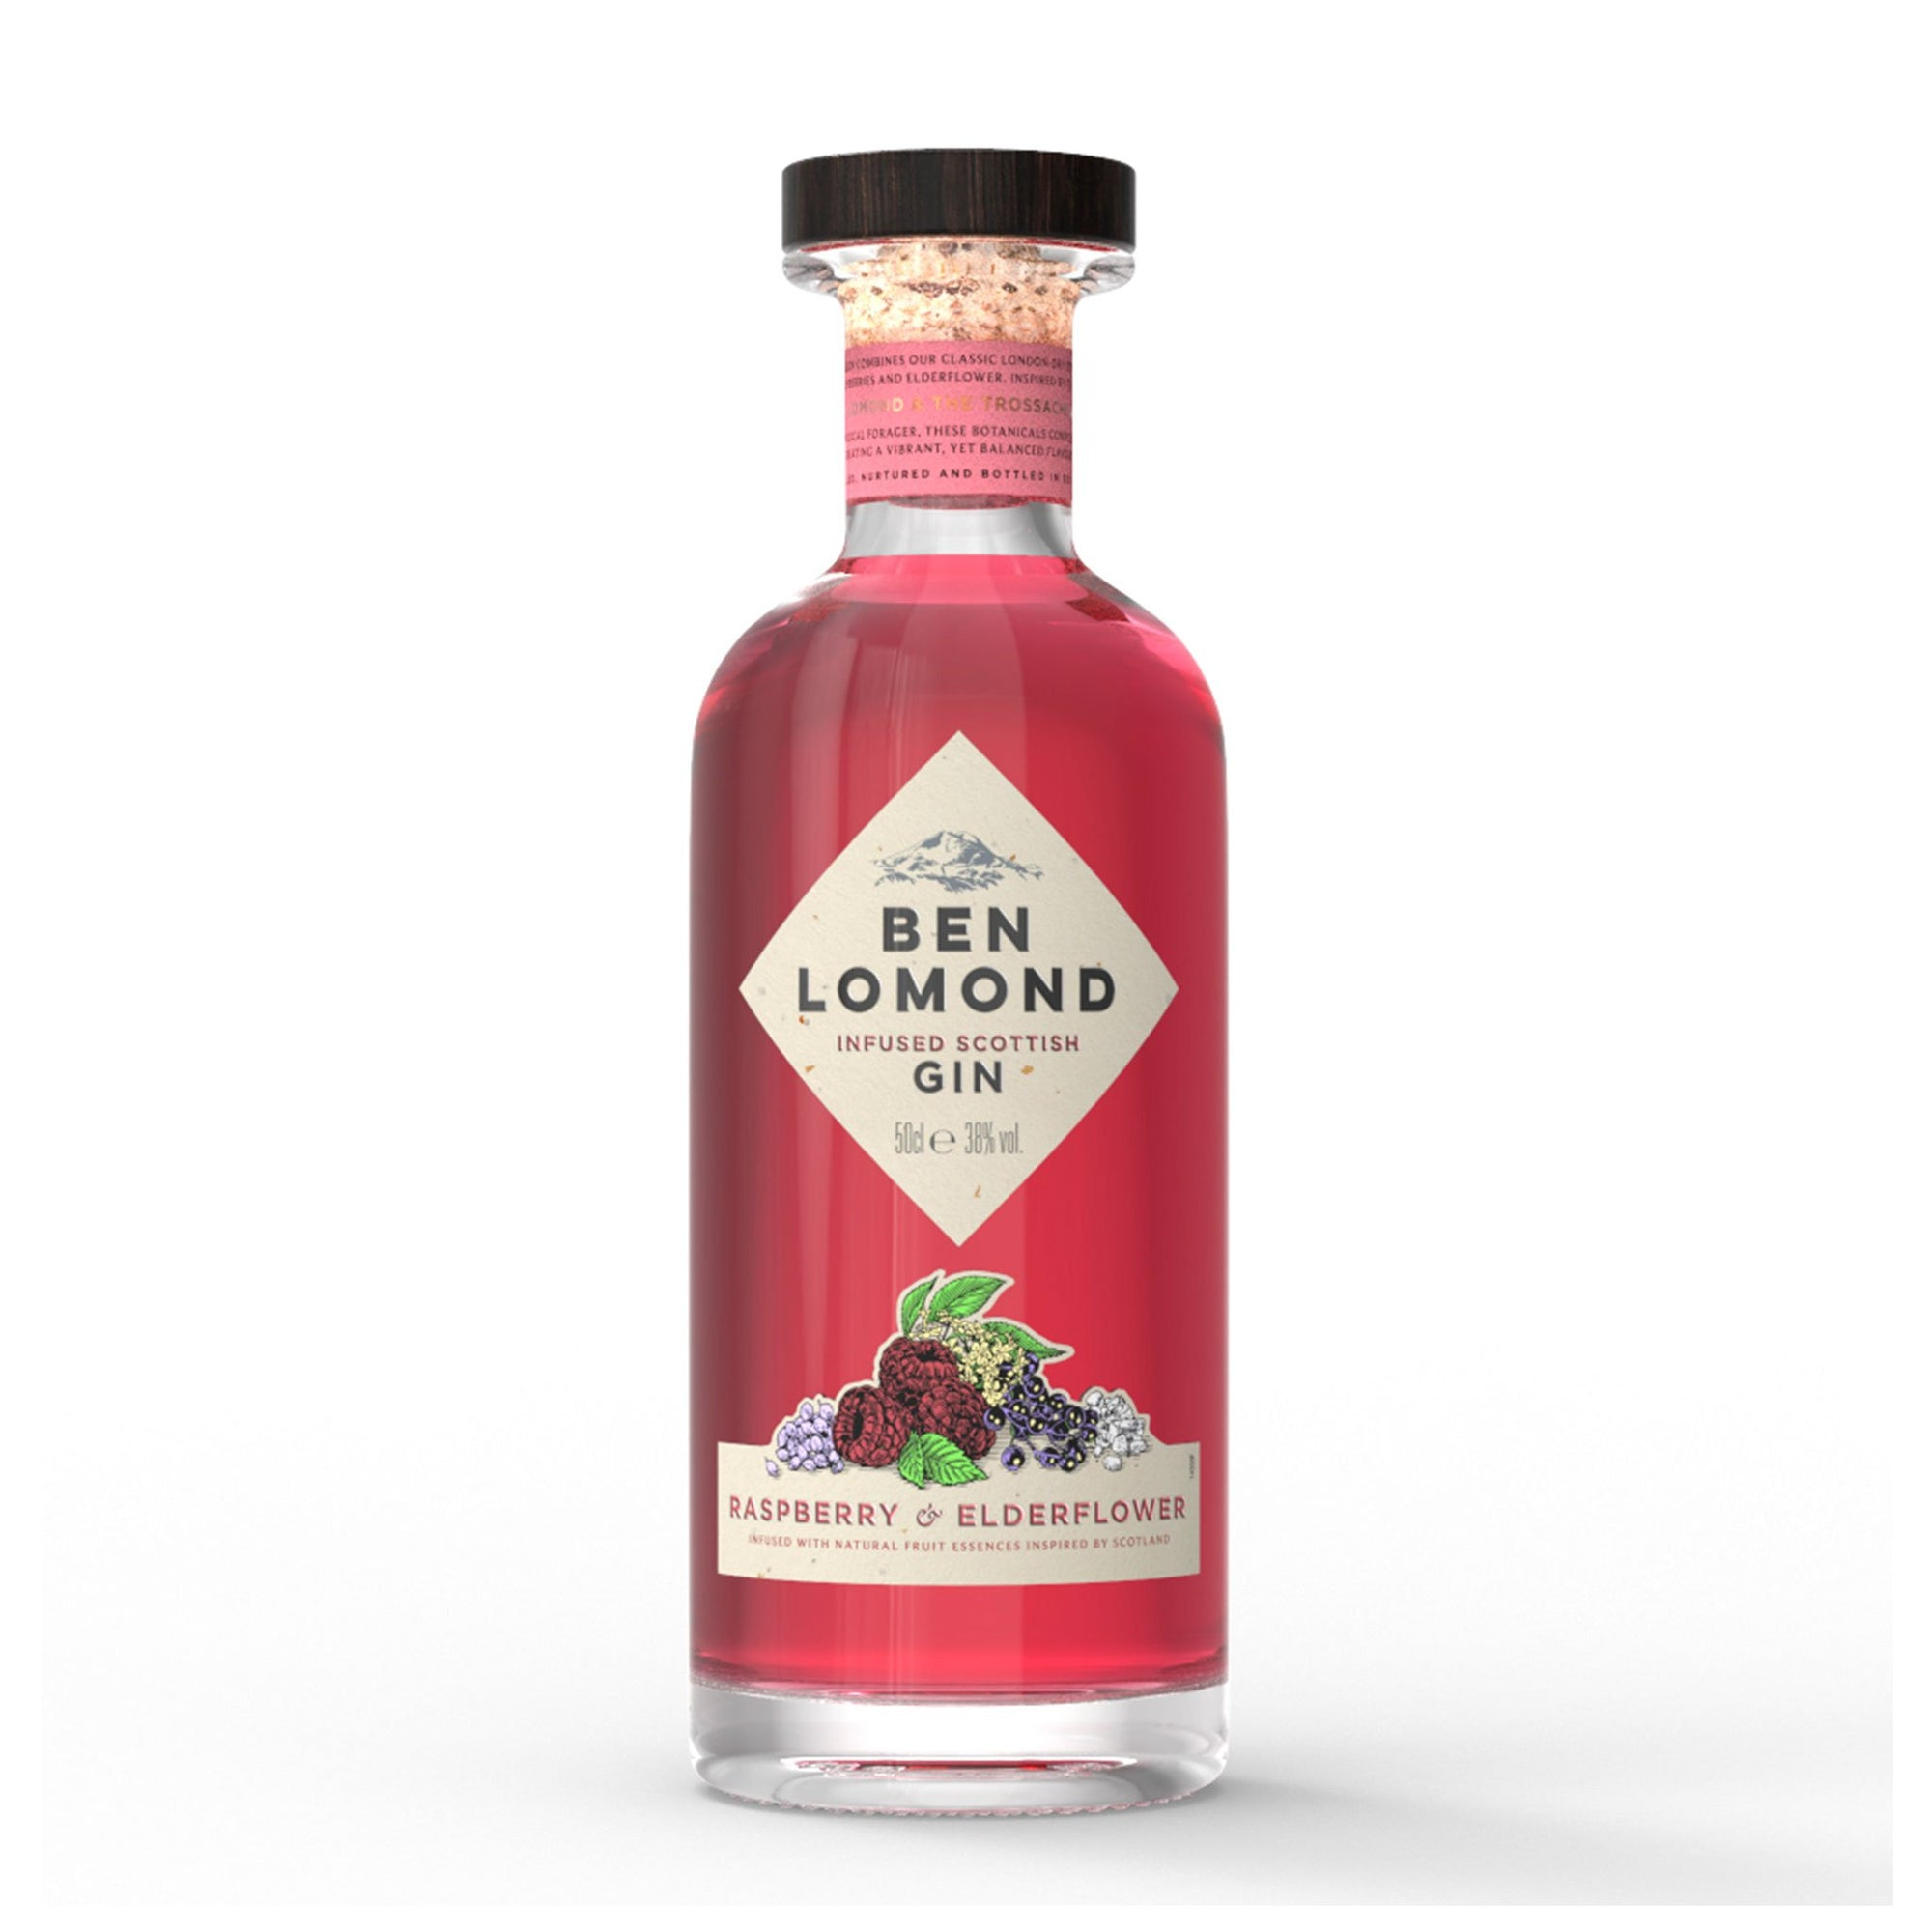 Ben Lomond Gin Raspberry & Elderflower